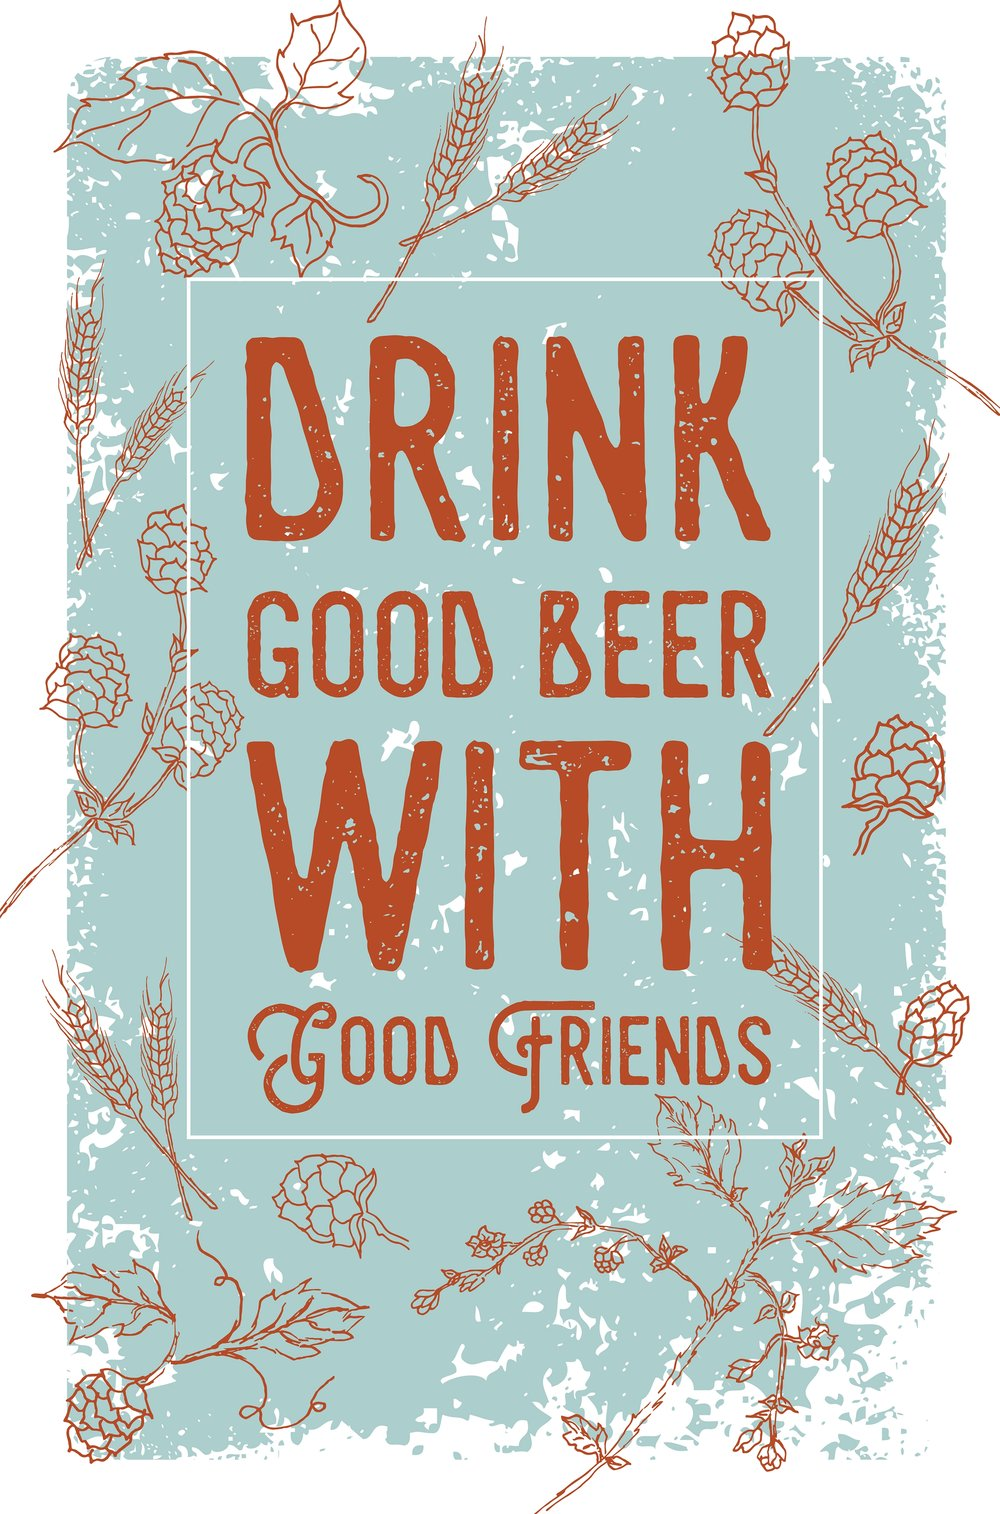 Craft Beer Poster-03.jpg